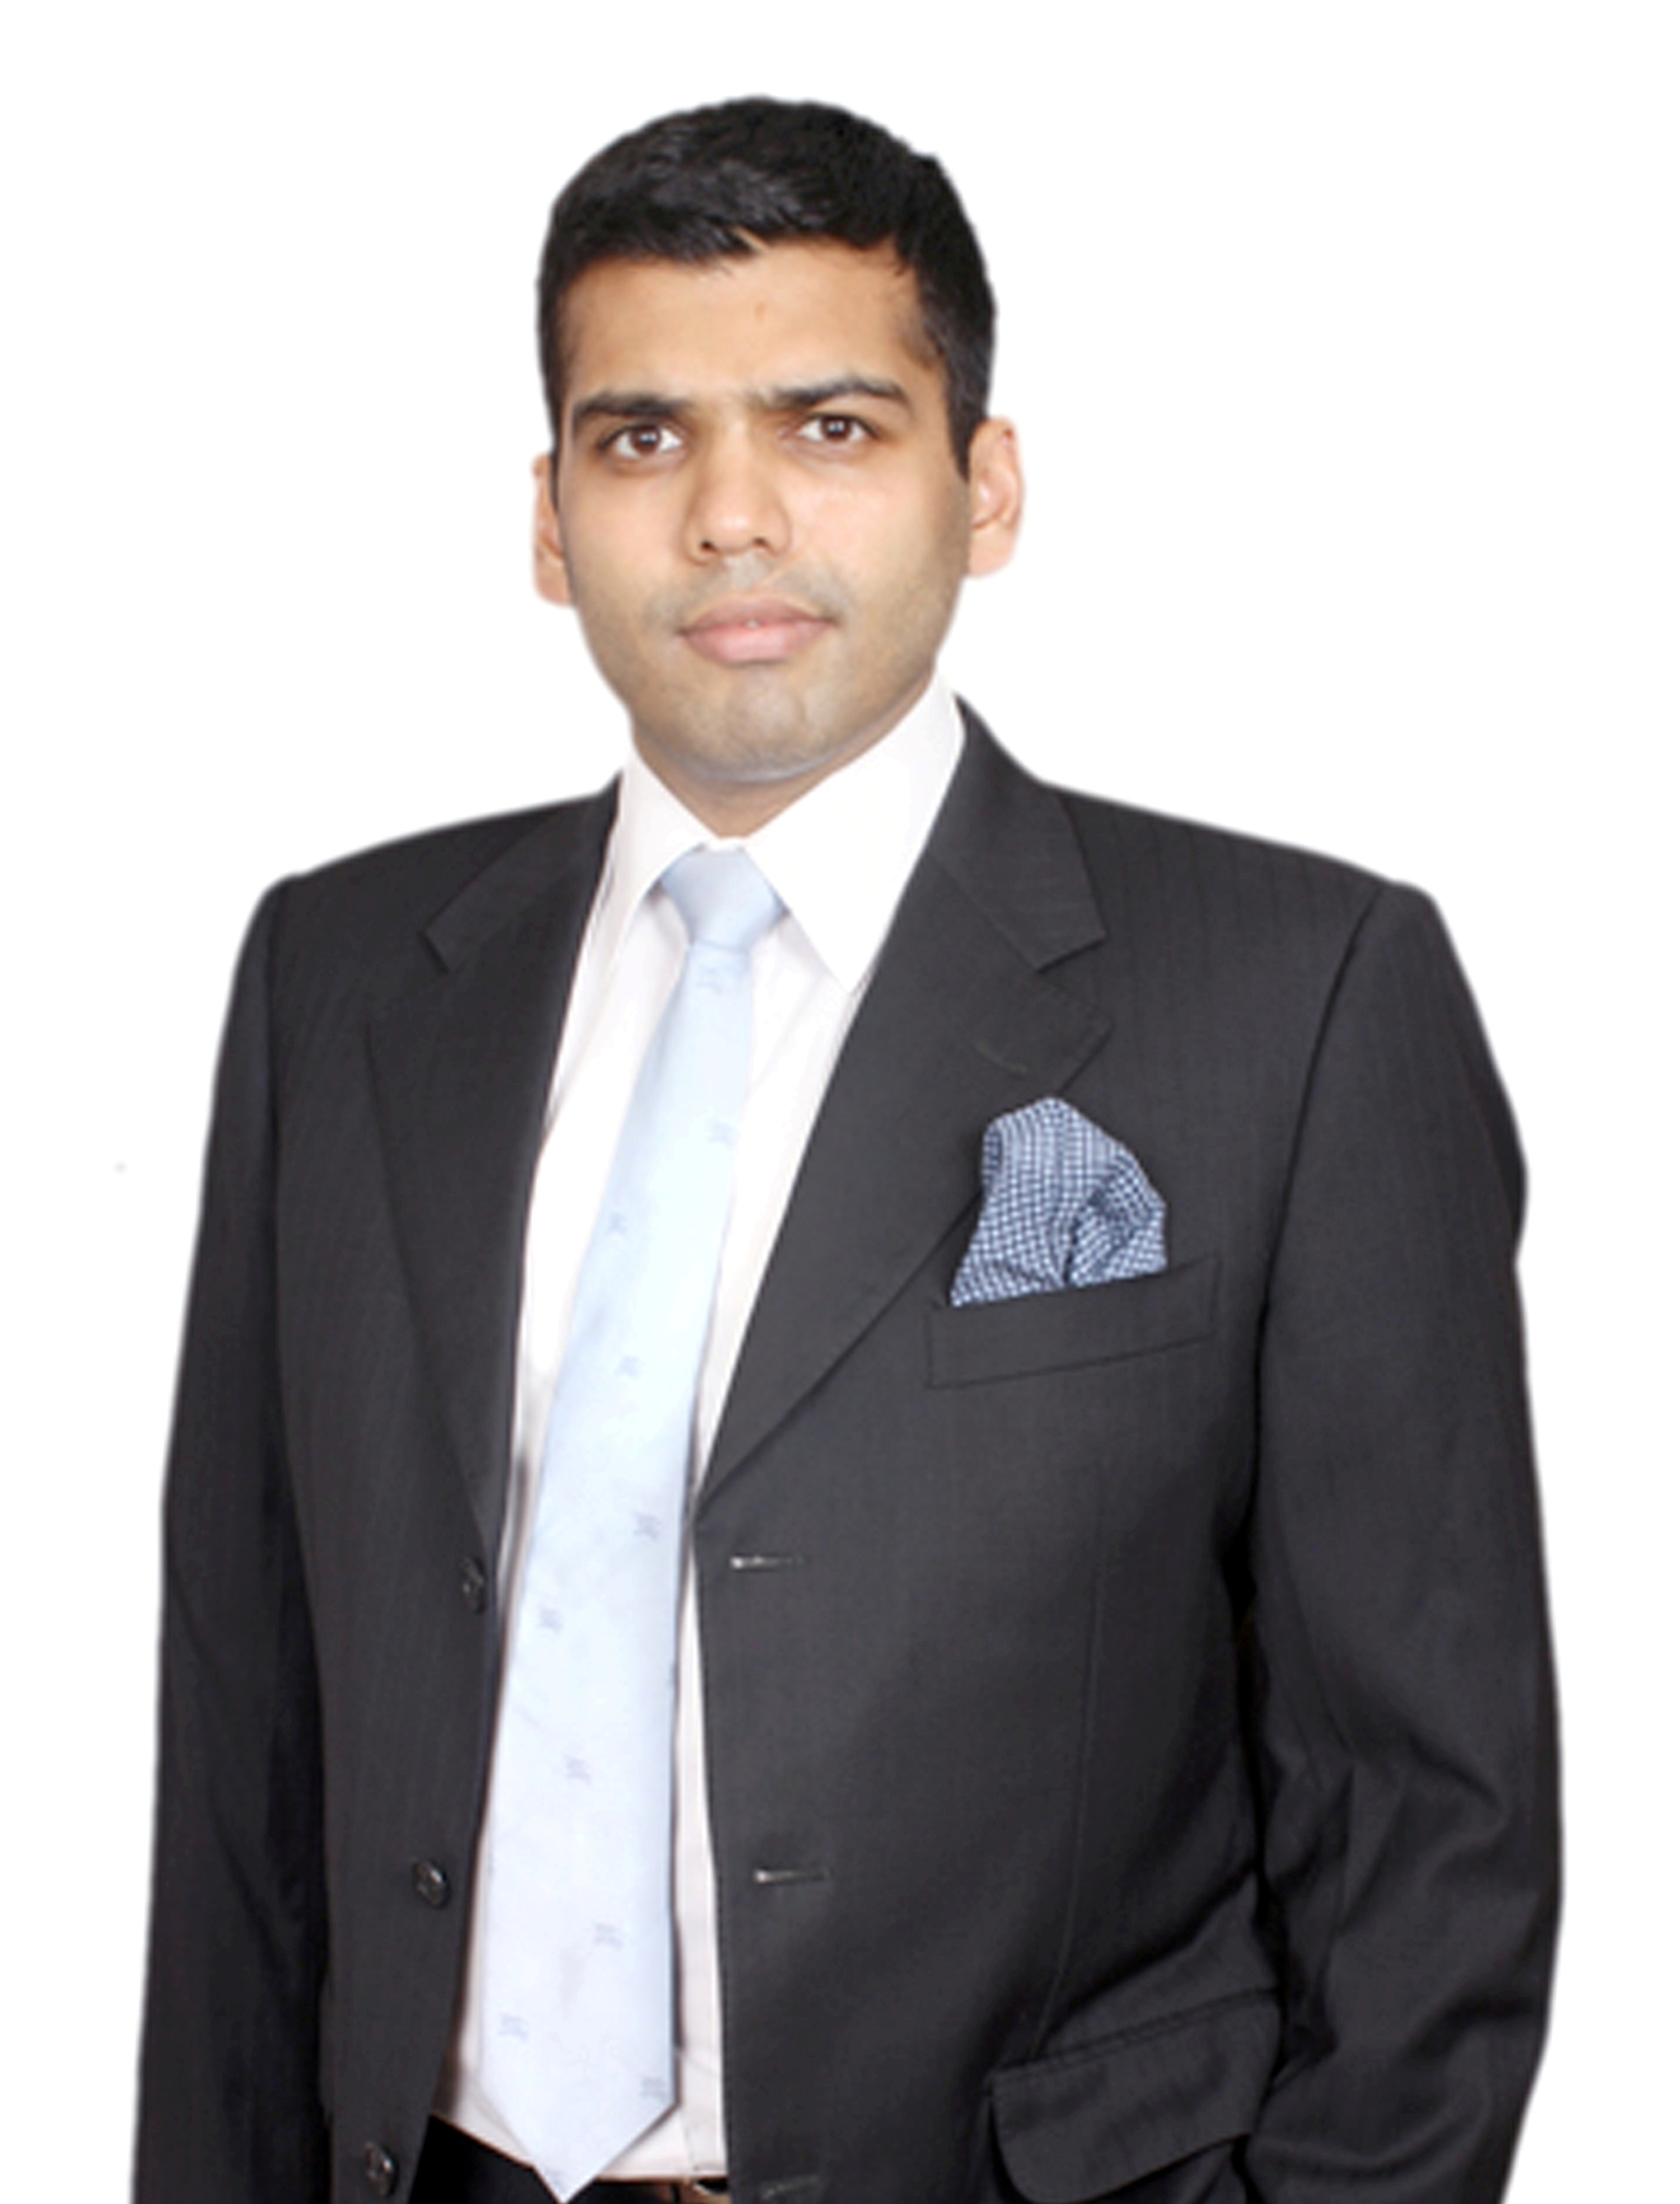 Abhay Garg, Director, Curo India, India real estate news, Indian realty news, Property new, Home, Policy Advocacy, Activism, Mall, Retail, Office space, SEZ, IT/ITeS, Residential, Commercial, Hospitality, Project, Location, Regulation, FDI, Taxation, Investment, Banking, Property Management, Ravi Sinha, Track2Media, Track2Realty